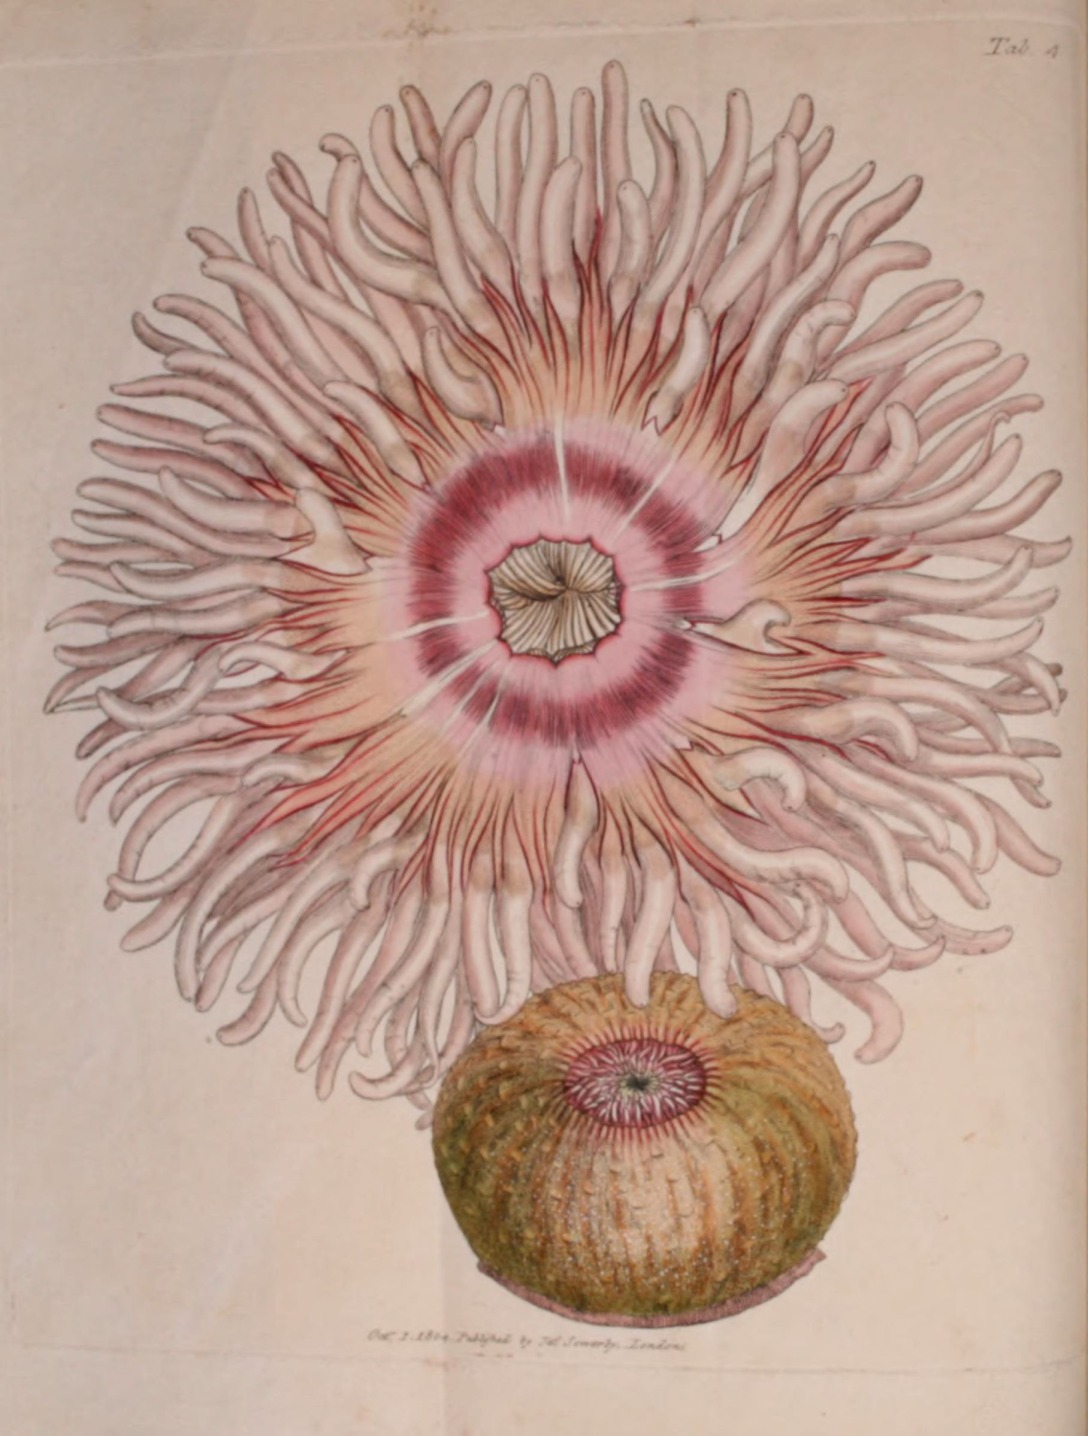 The British miscellany London :Printed by R. Taylor & Co., and sold by the author, J. Sowerby by White, Johnson, Symonds, and all other booksellers,1806. http://biodiversitylibrary.org/item/91785